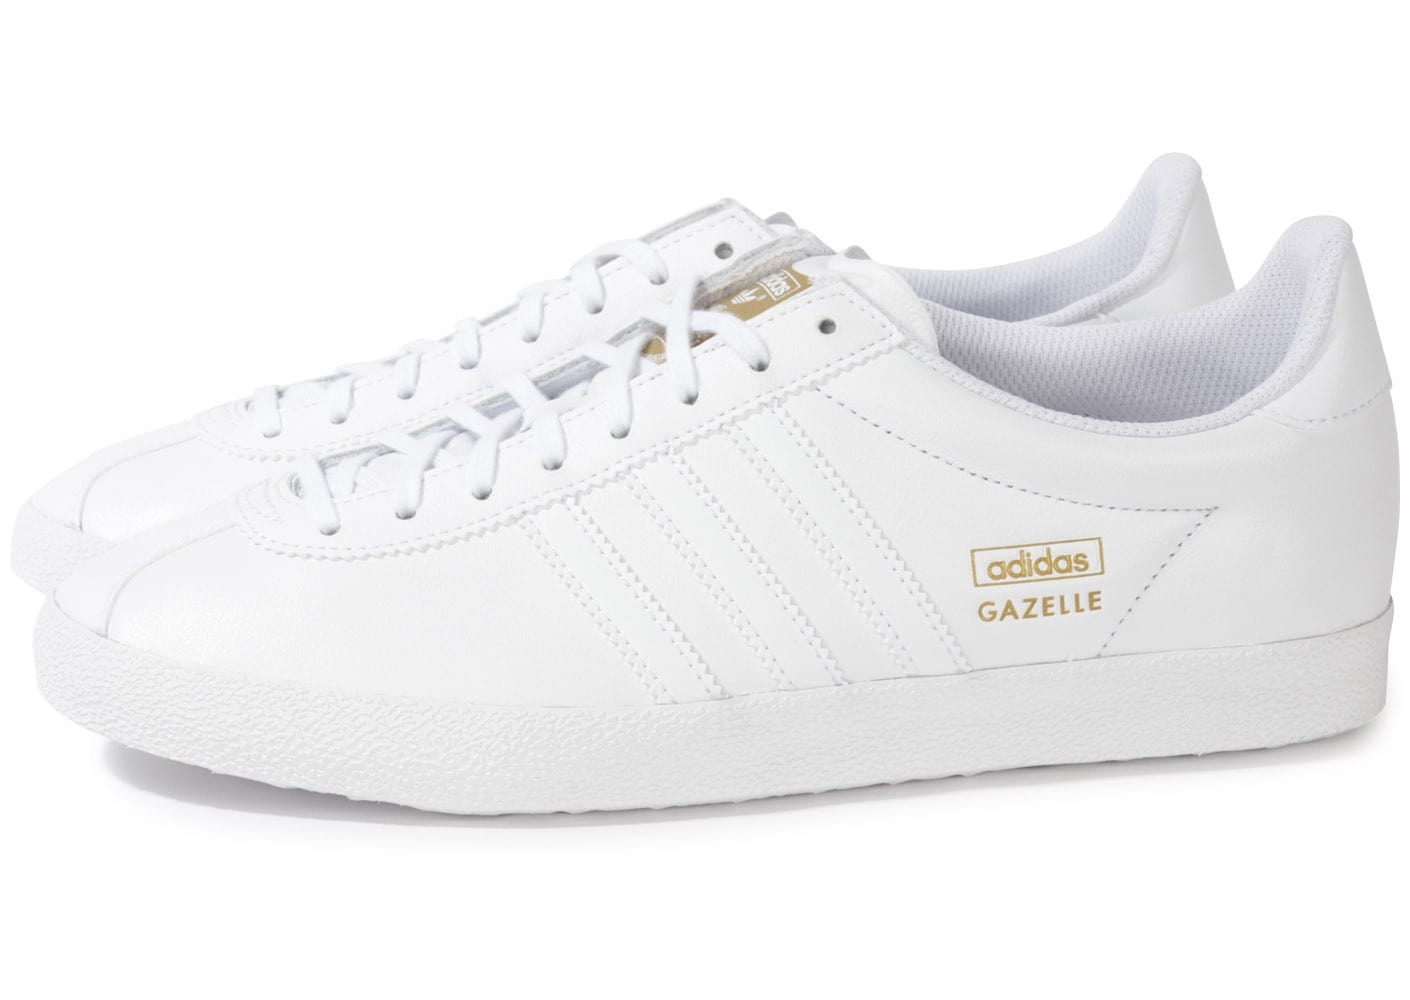 adidas gazelle og cuir blanc chaussures homme chausport. Black Bedroom Furniture Sets. Home Design Ideas